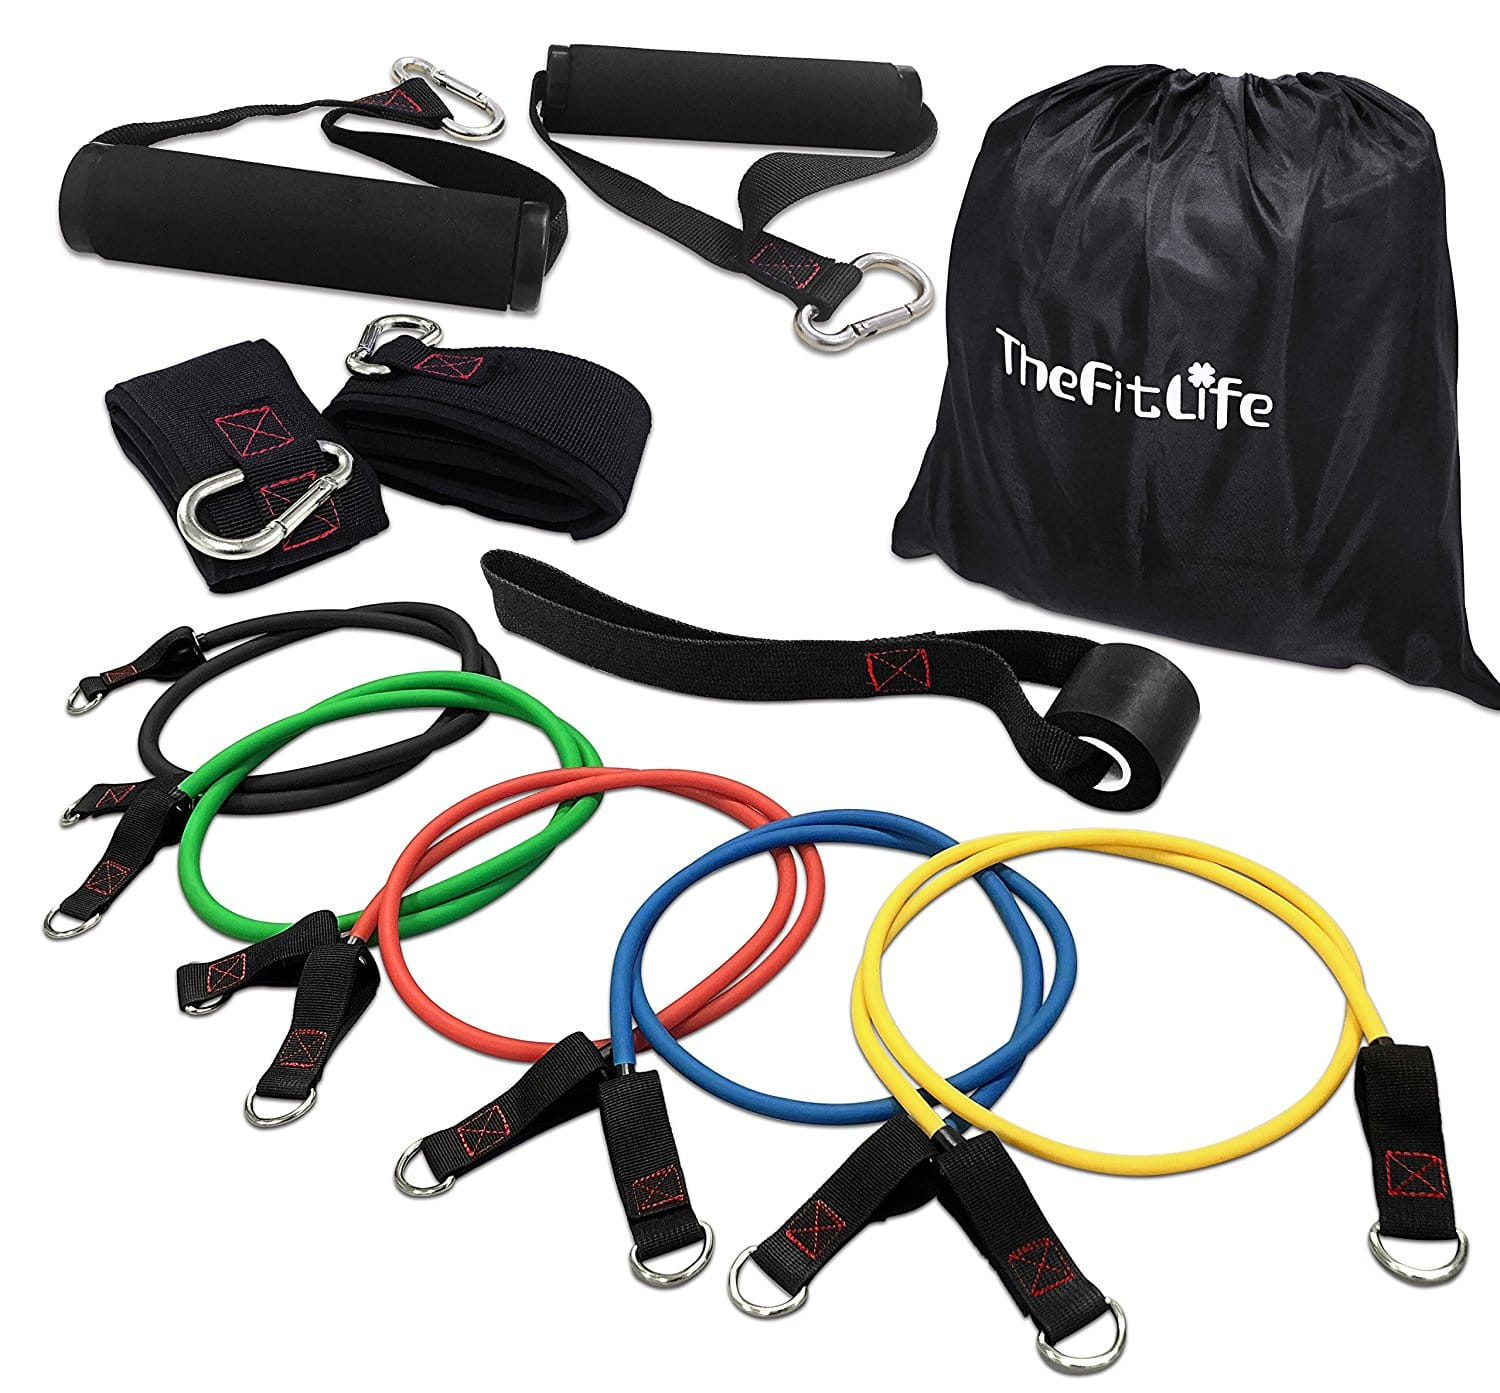 11-Piece Exercise Workout Resistance Bands Set $18.94 + Free Shipping